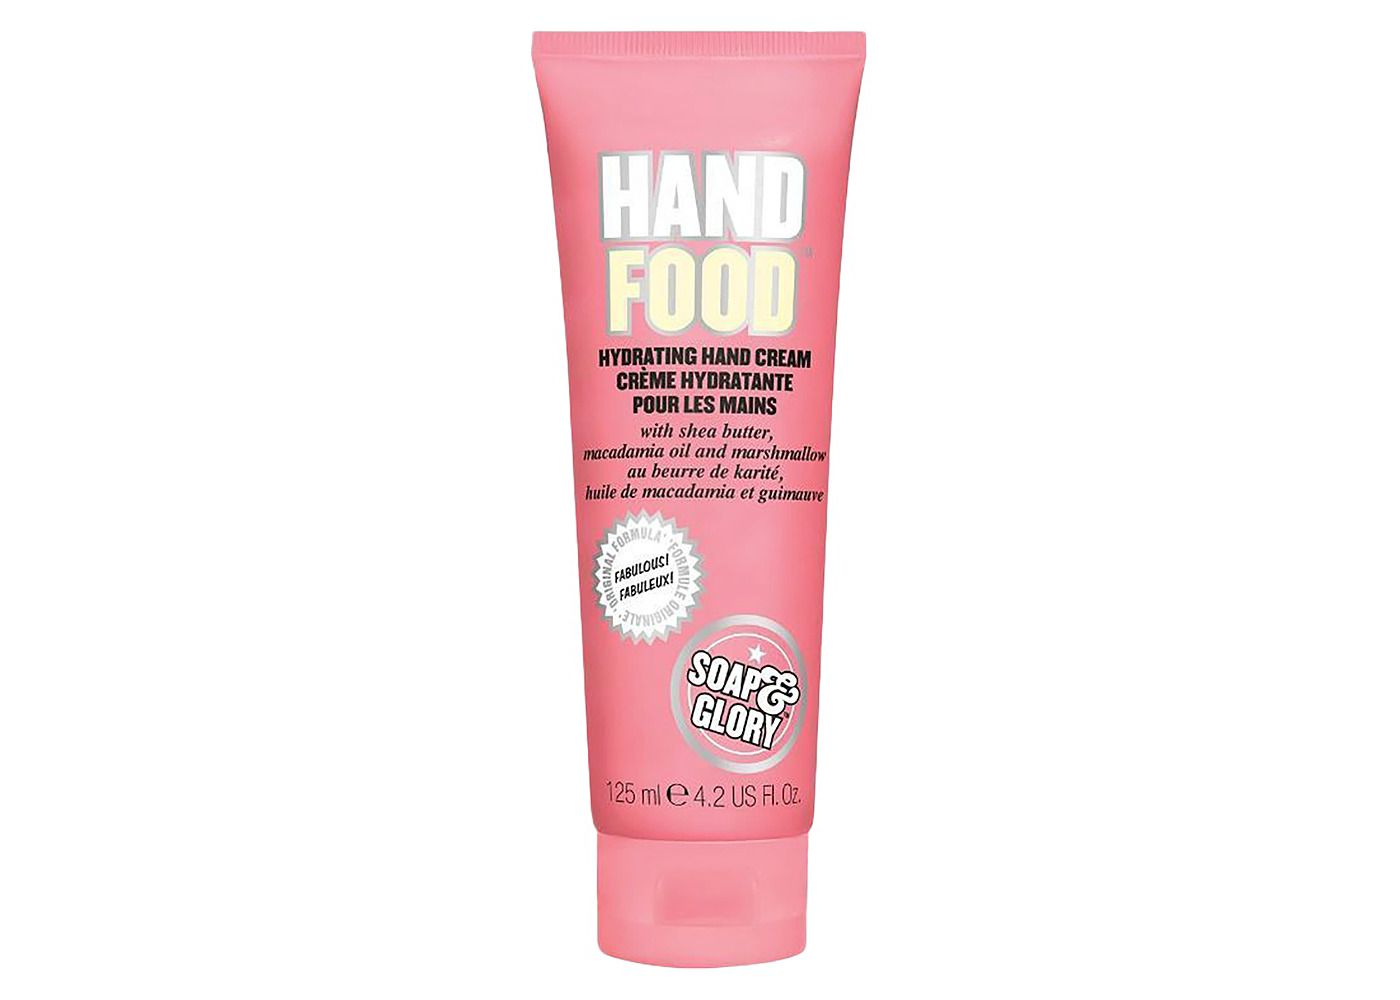 Soap and Glory hand food lotion